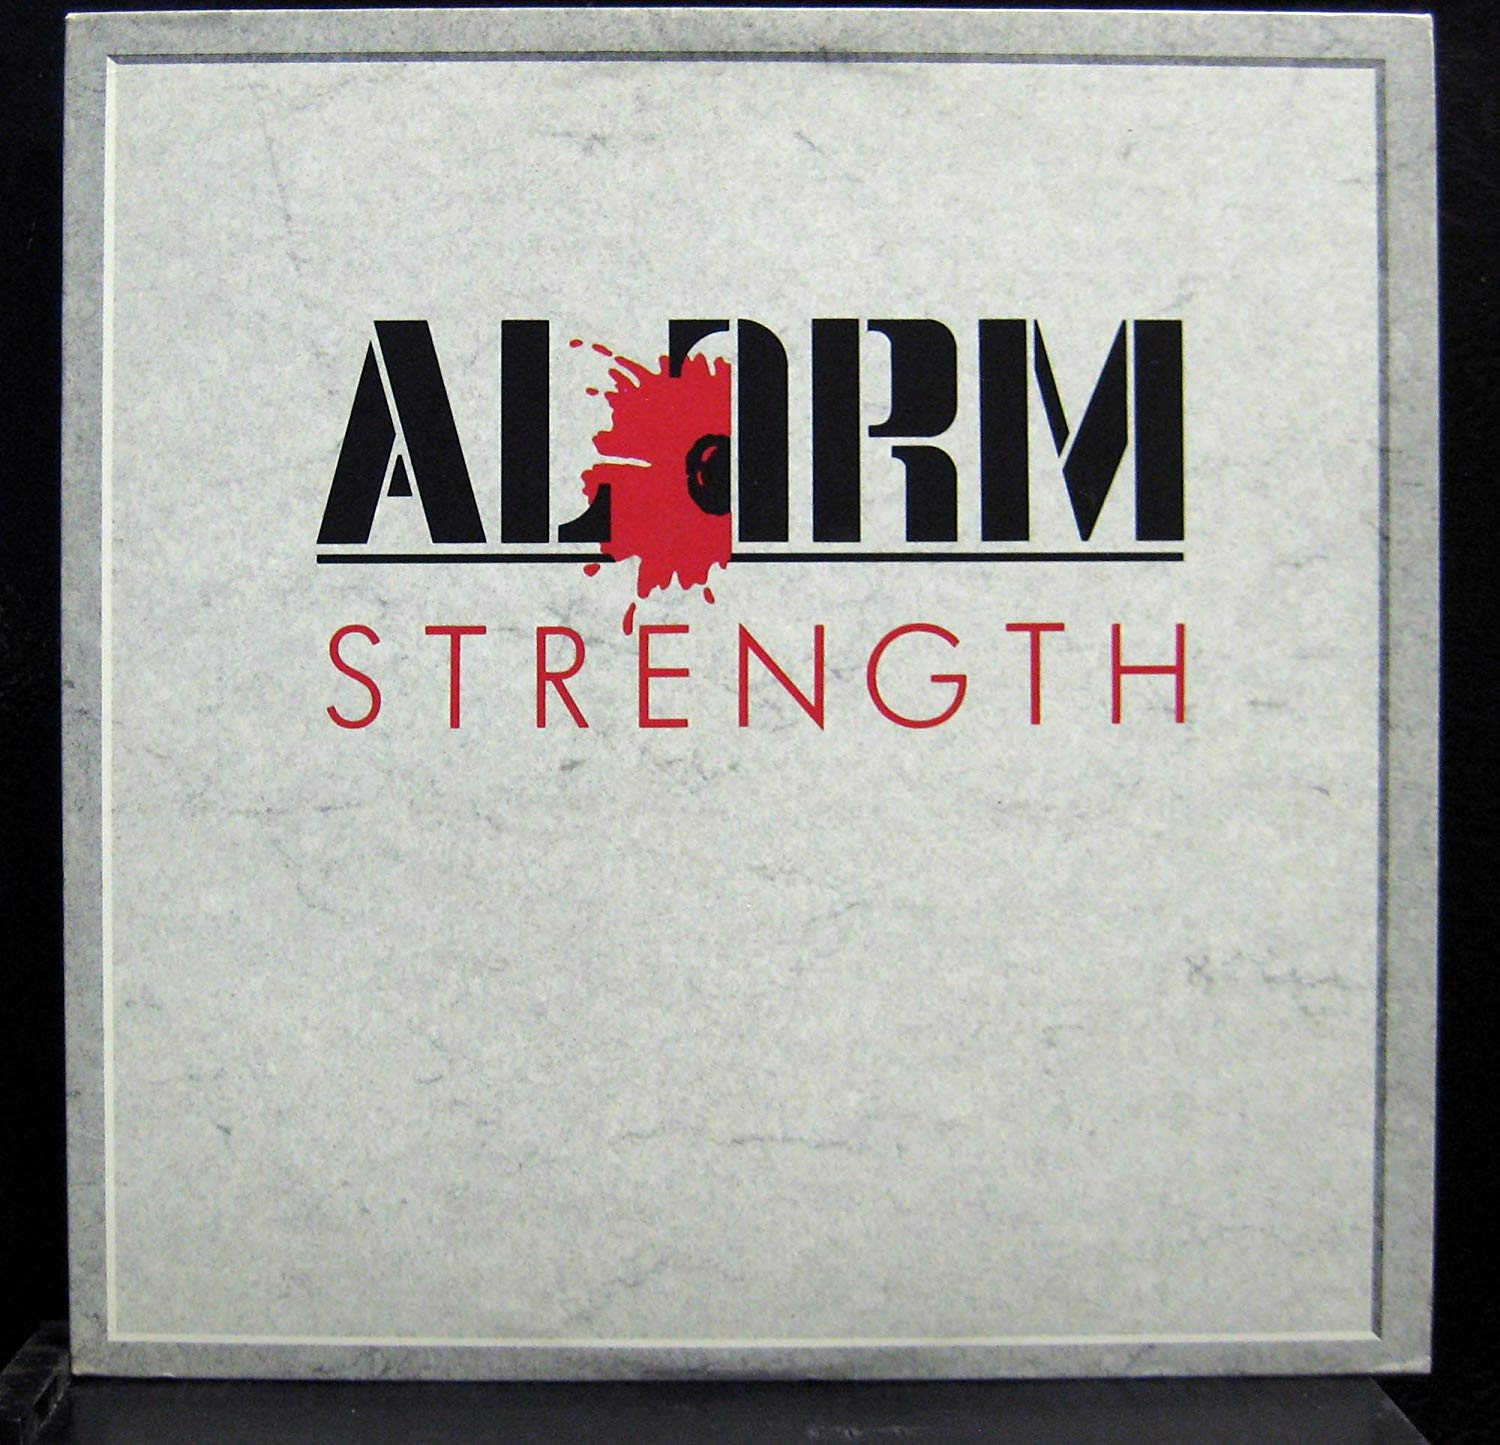 From Strength To Strength: The Alarm Set To Reissue 1985 Landmark Album